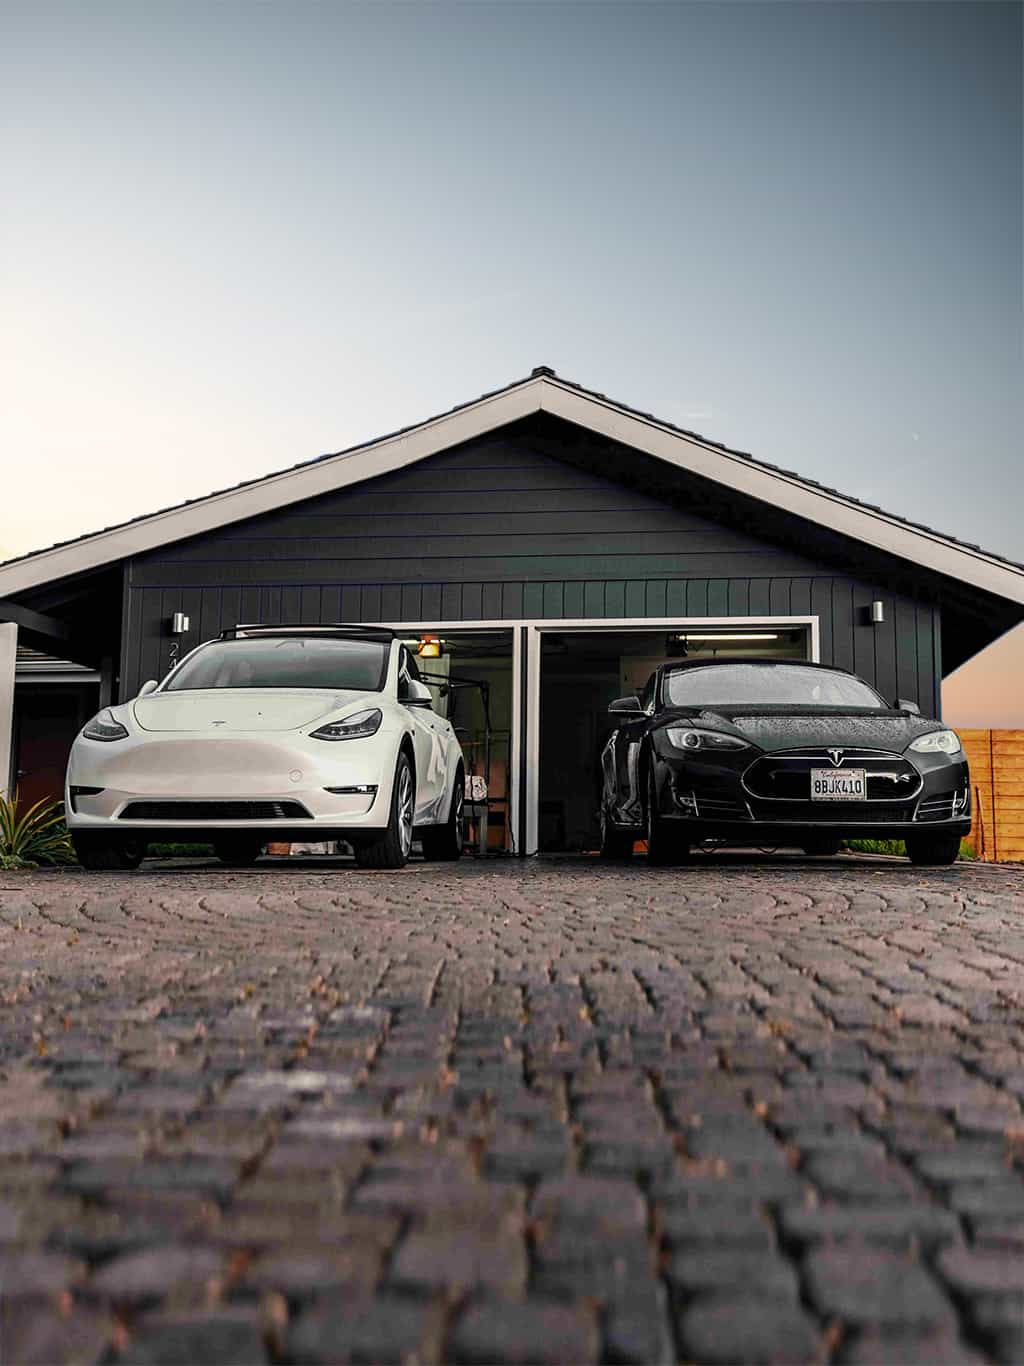 Two Tesla EVs in front of a house.